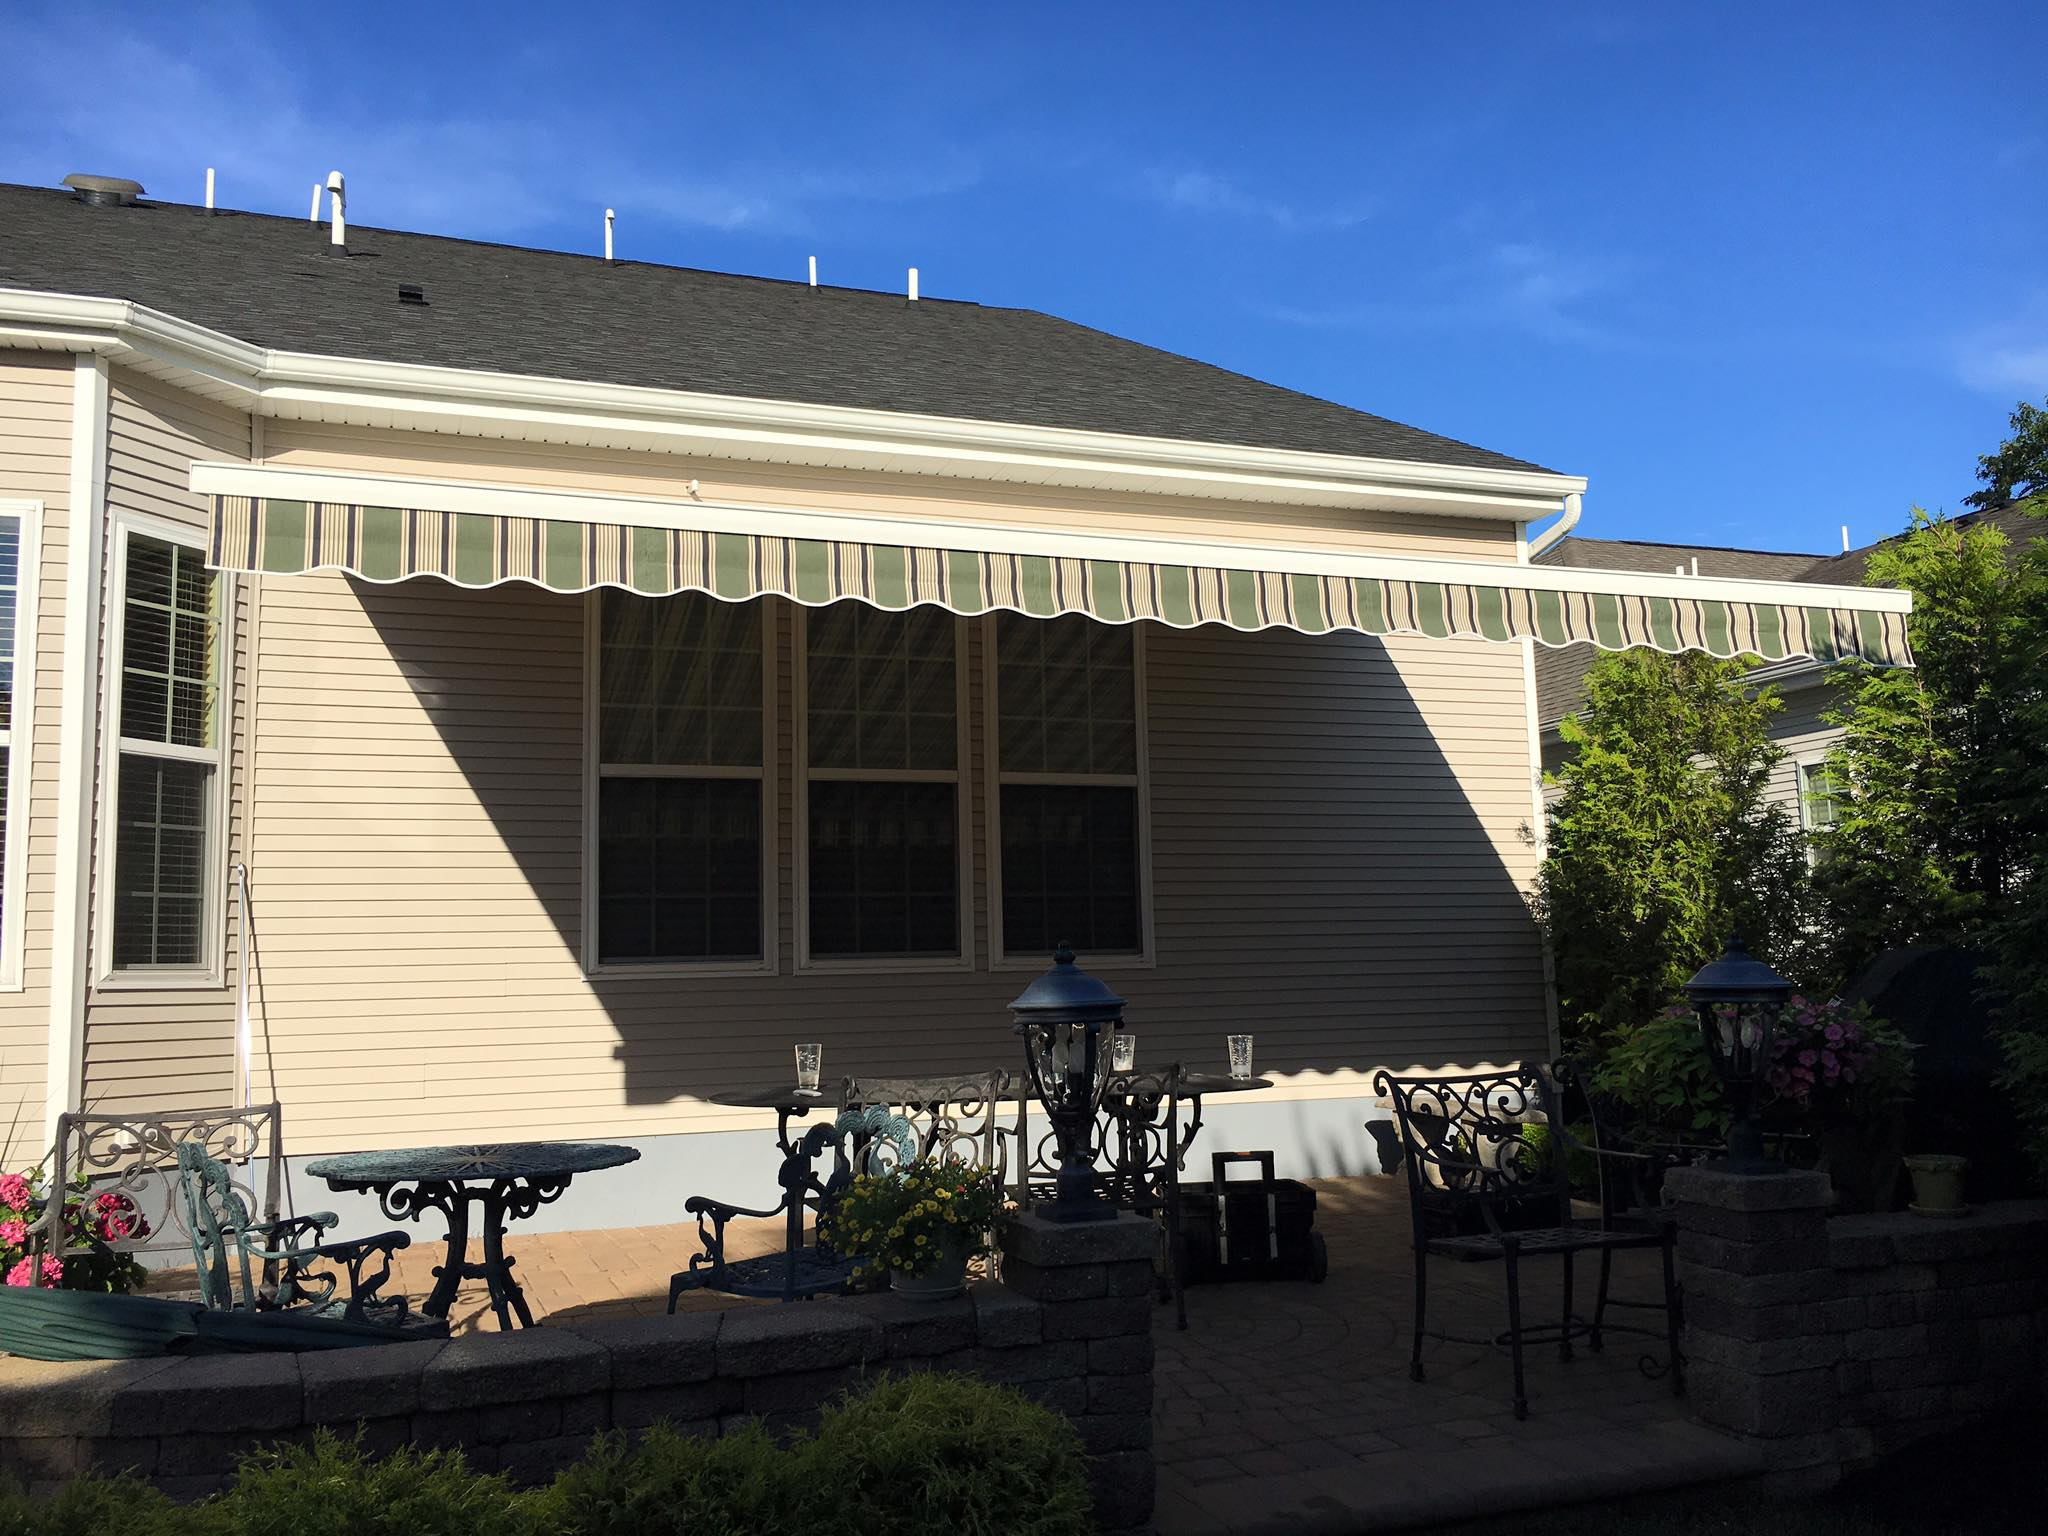 awning retractable awnings in alloworigin eco canopies accesskeyid custom disposition nj